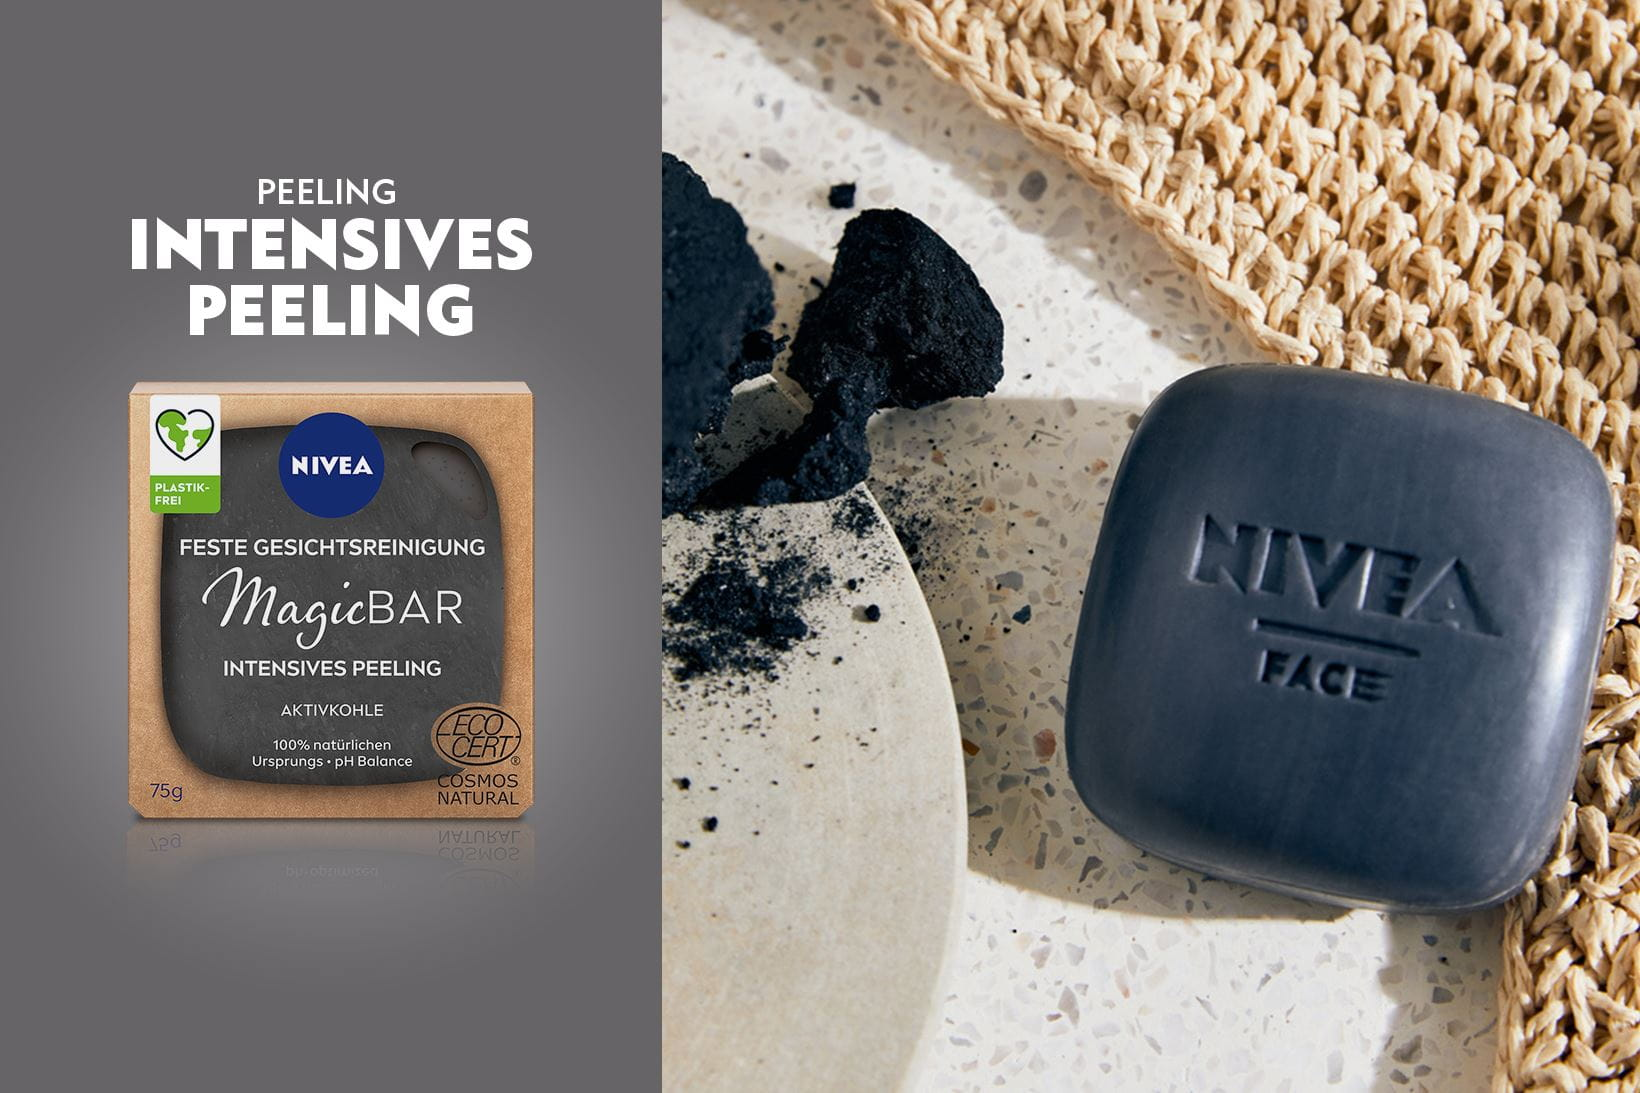 NIVEA Magic Bar – Intensives Peeling